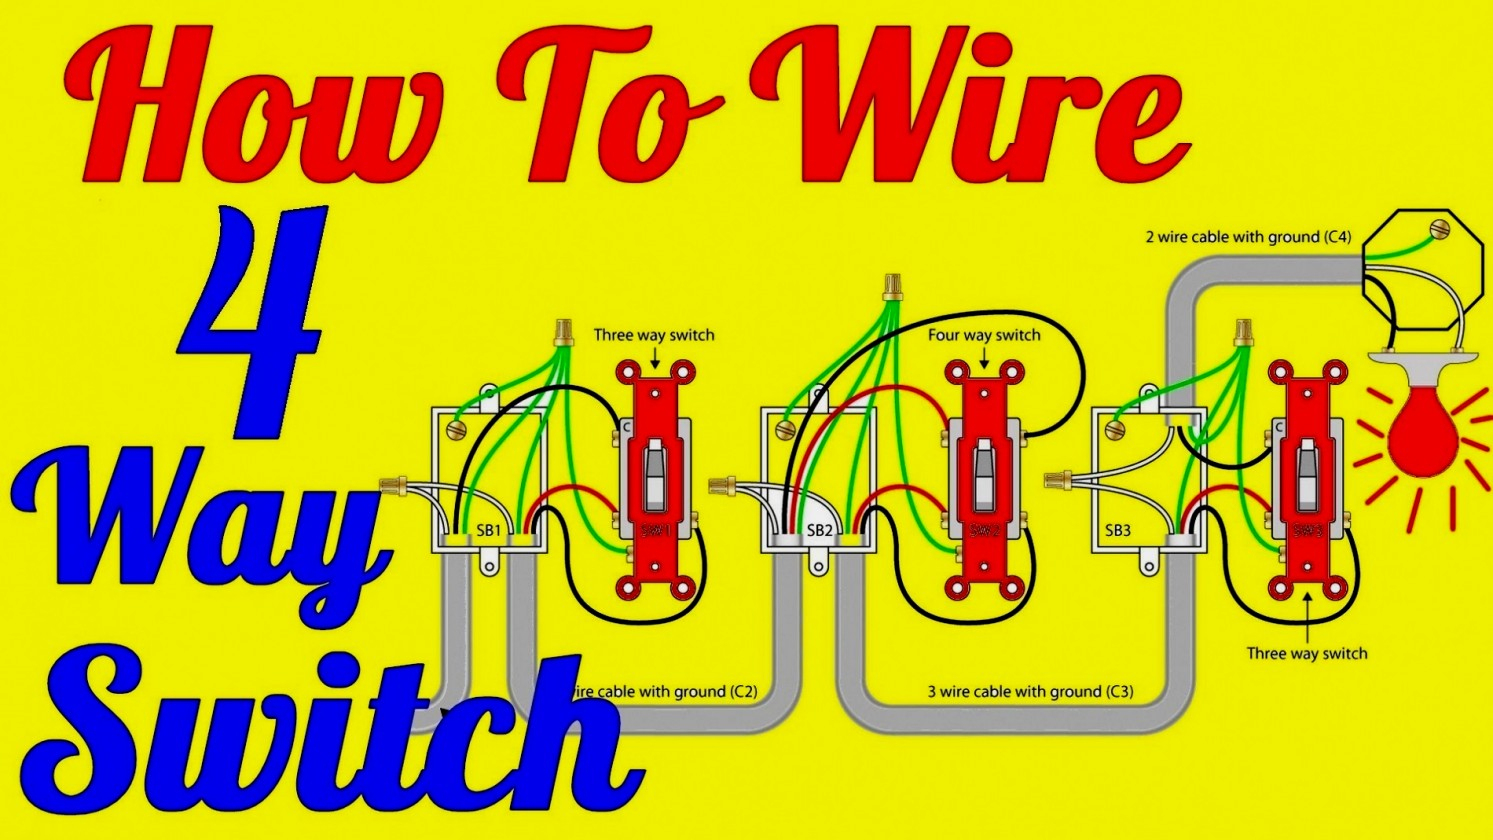 Way Switch Wiring Diagram Multiple Lights How Wire on wiring multiple light switches with multiple lights, 4-way switch with multiple lights, with a two way switch wiring multiple lights,